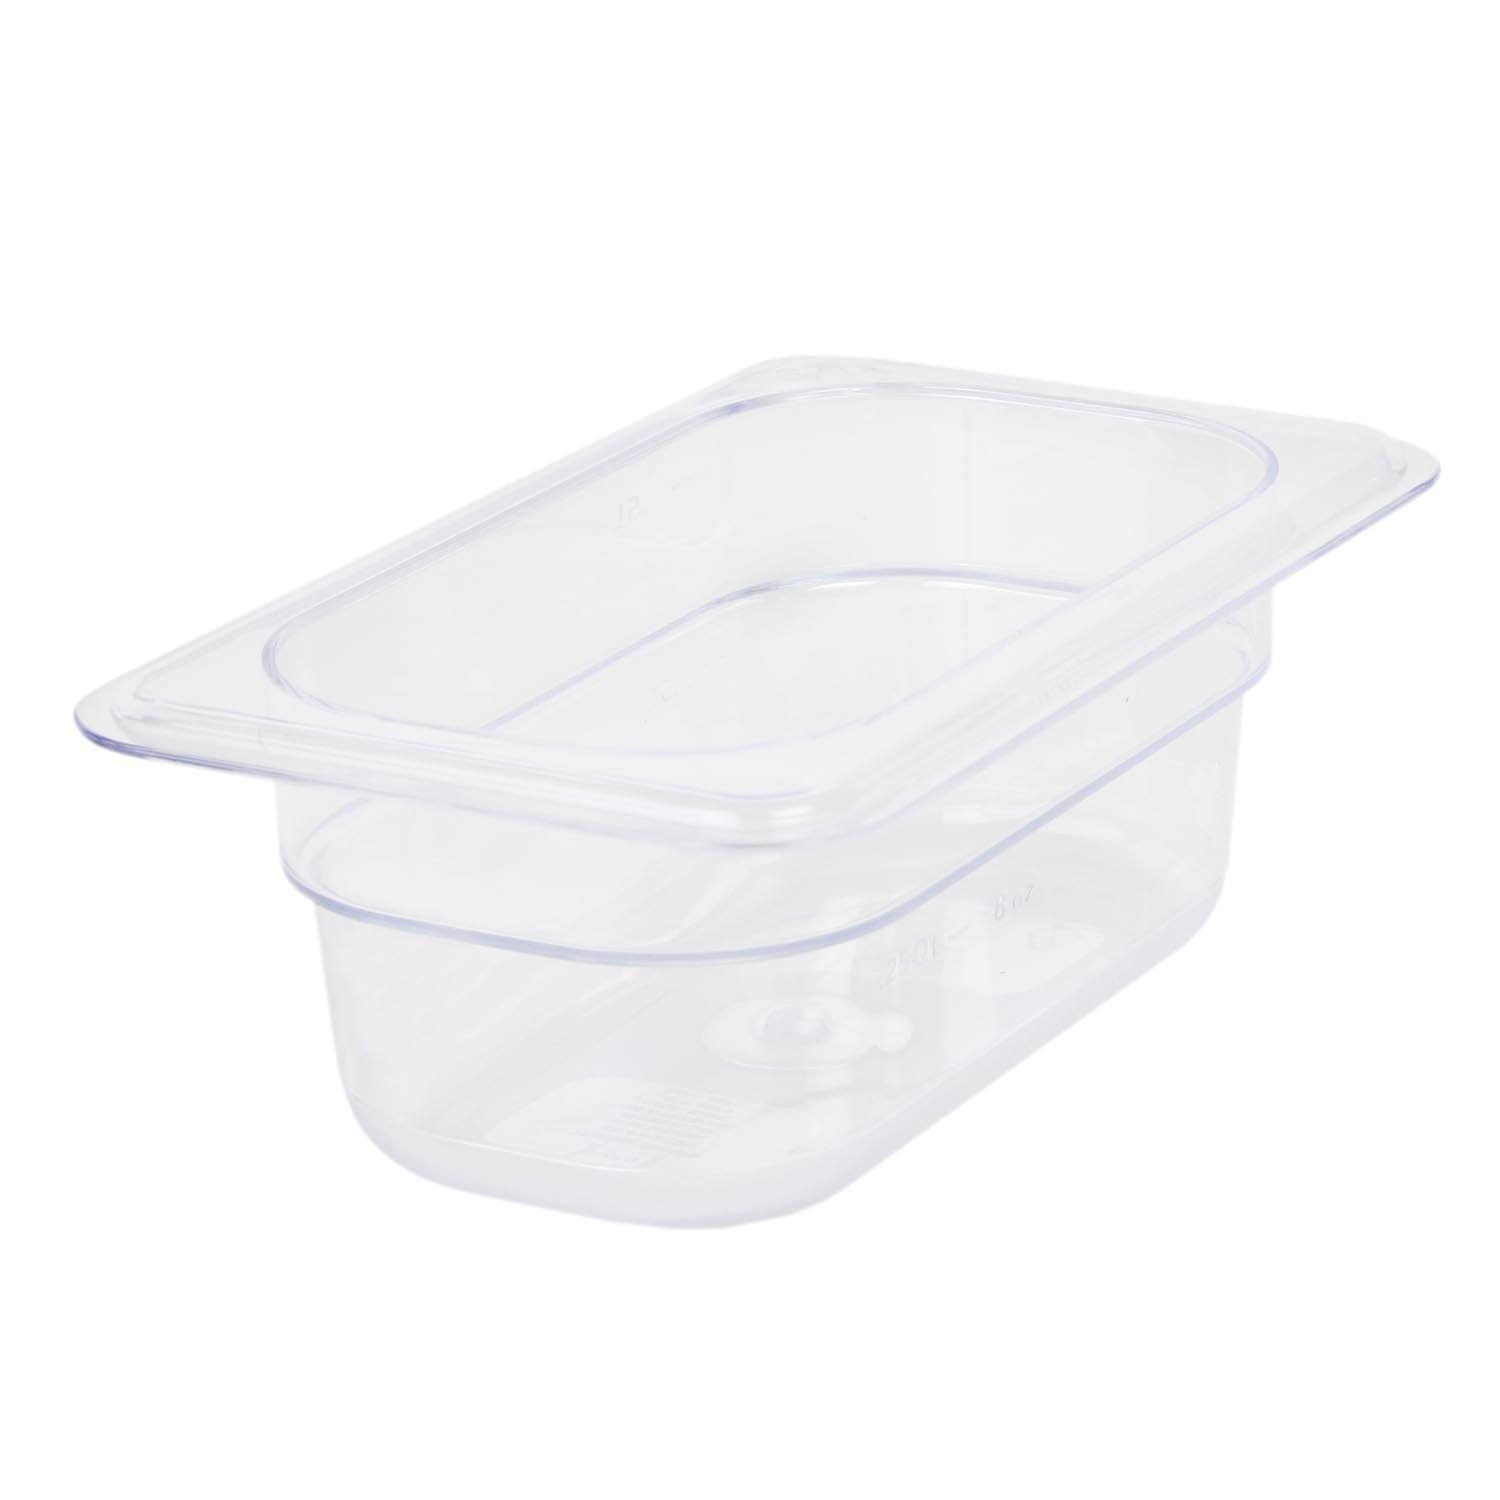 Excellante 849851007284 Deep Polycarbonate Food Pan, 2.5